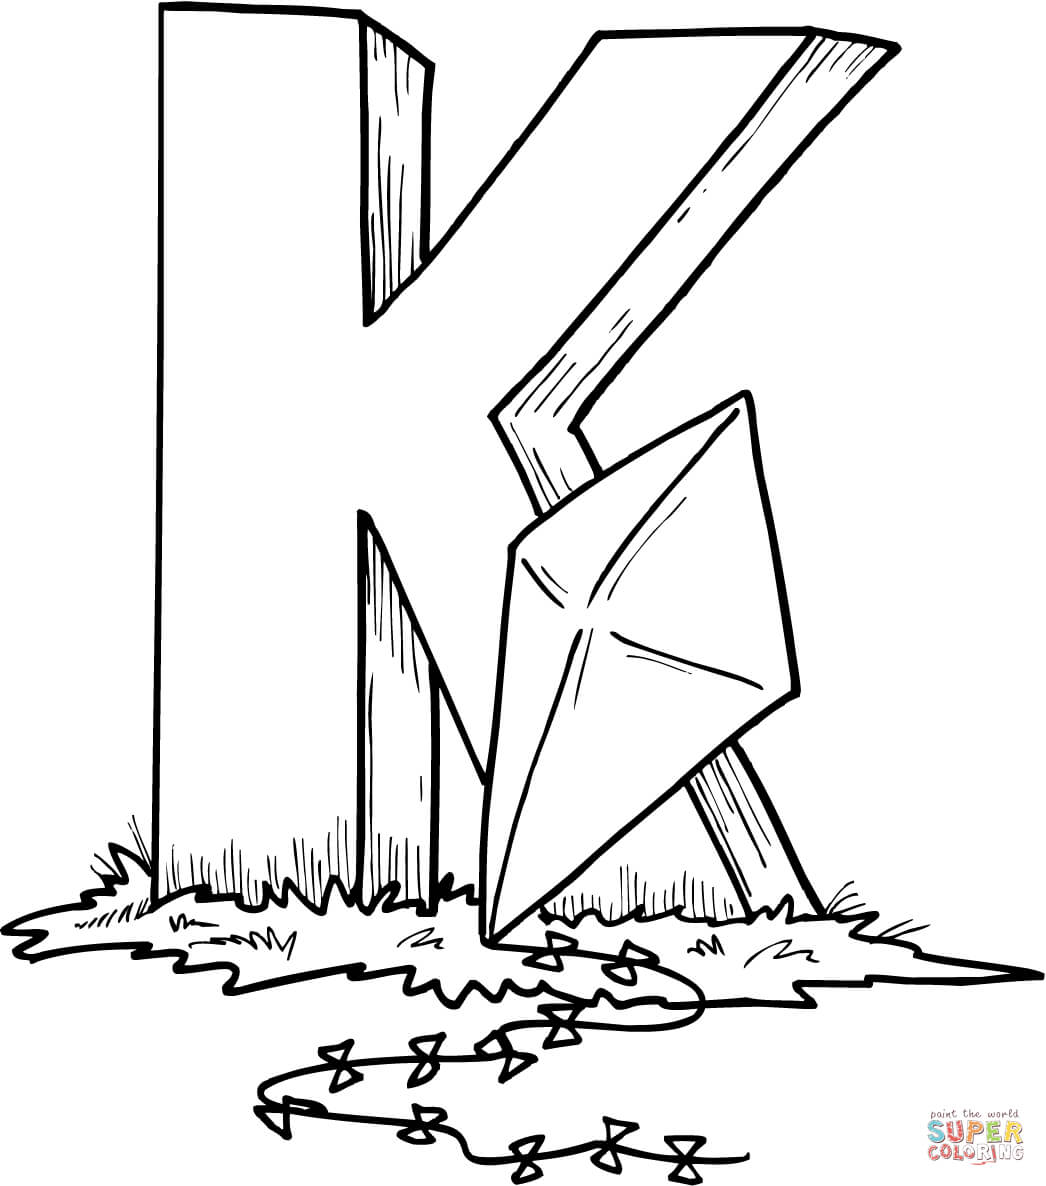 k coloring picture letter k coloring pages to download and print for free coloring picture k